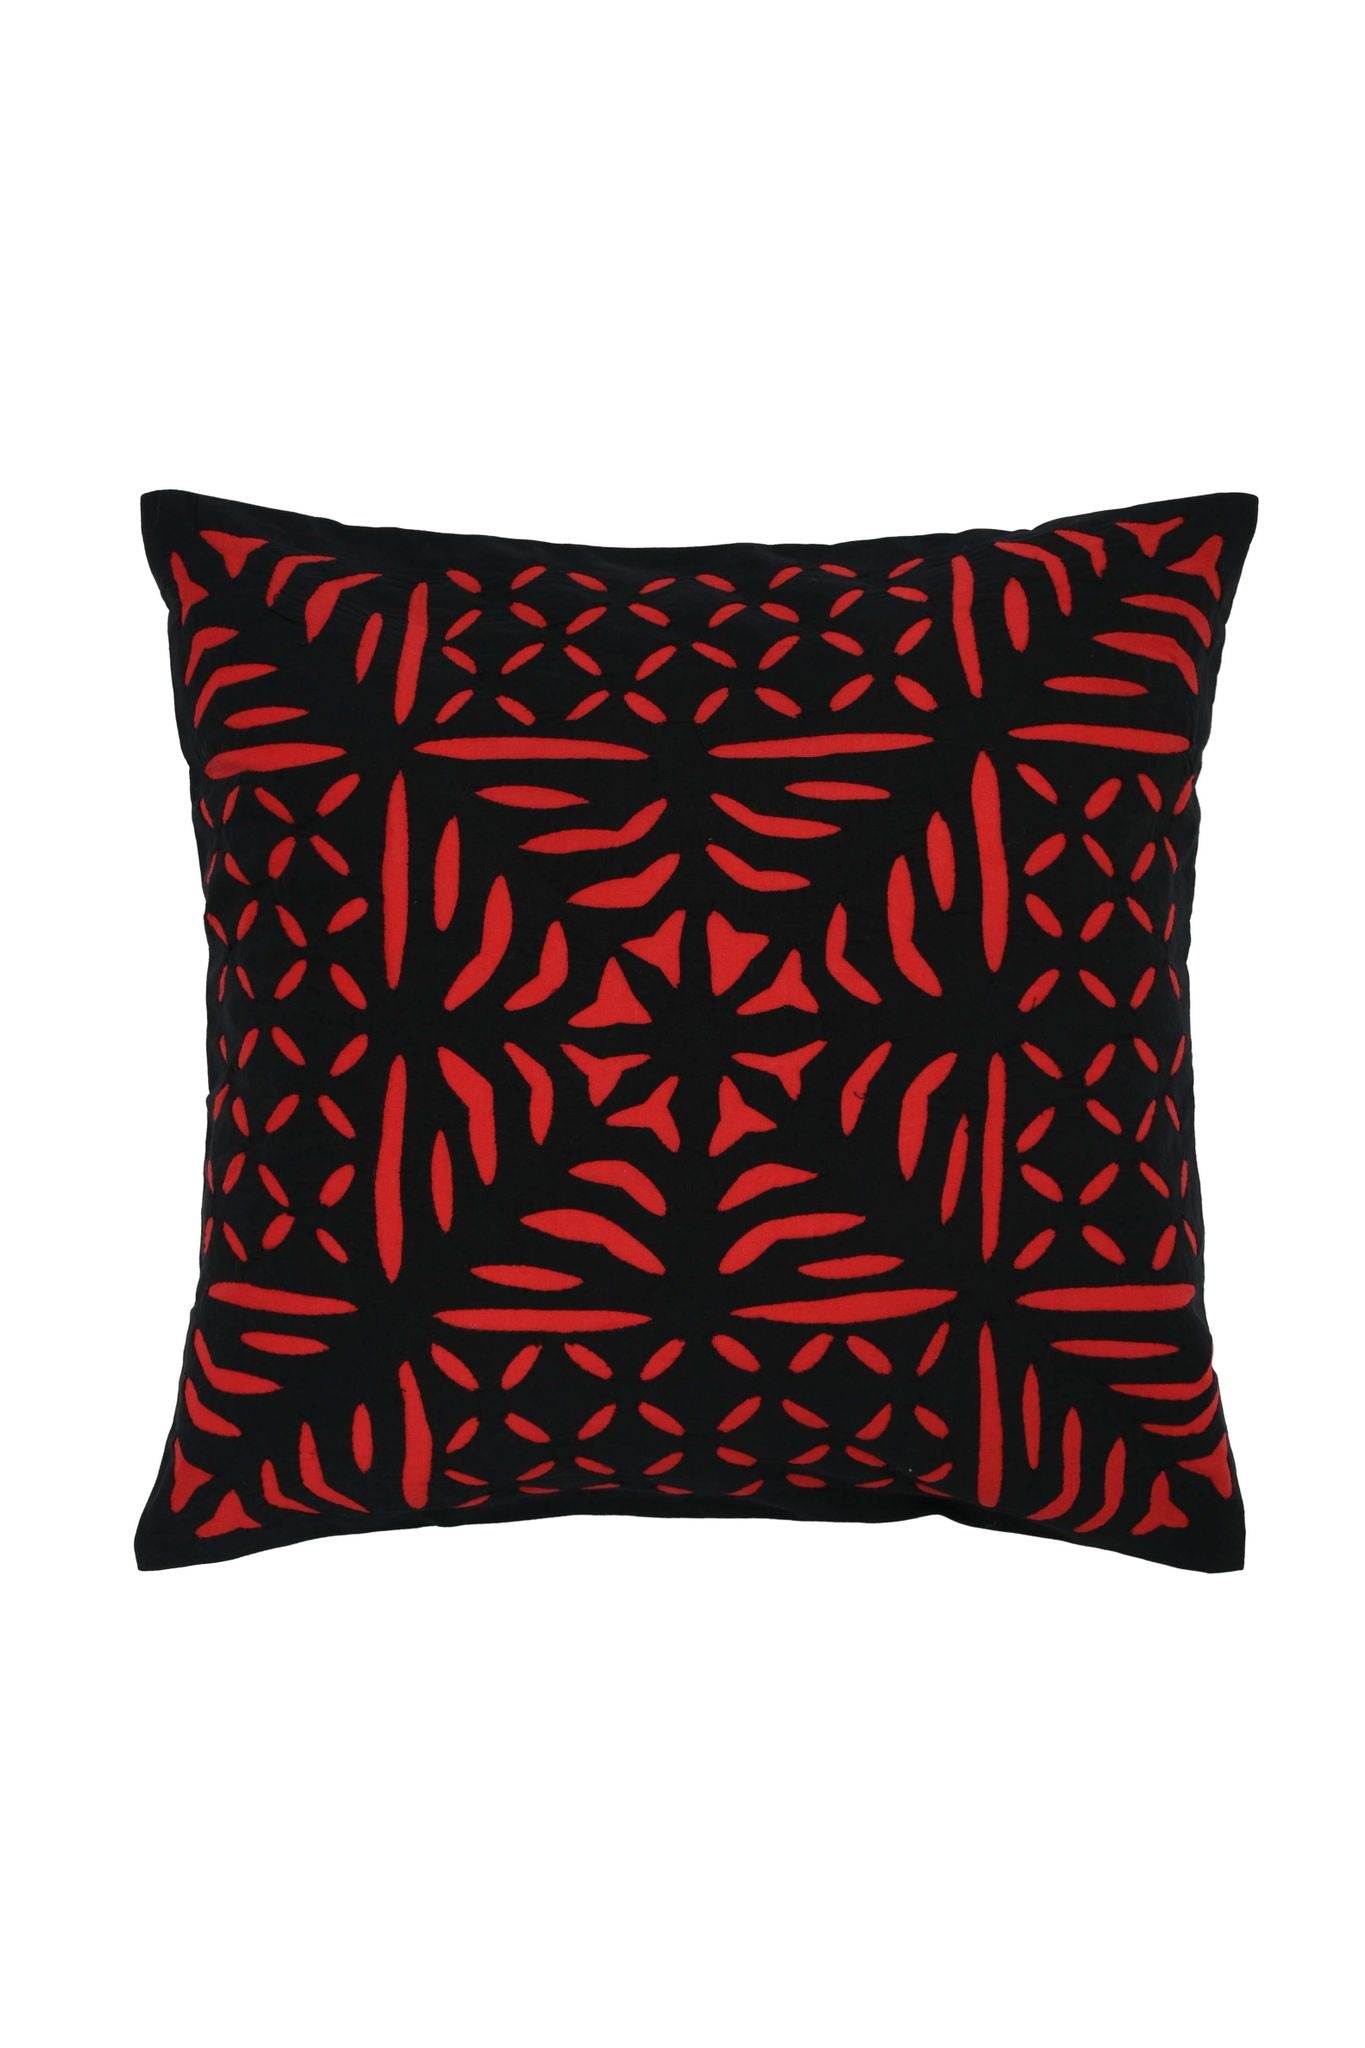 Hand Applique Black and Red Cushion Cover